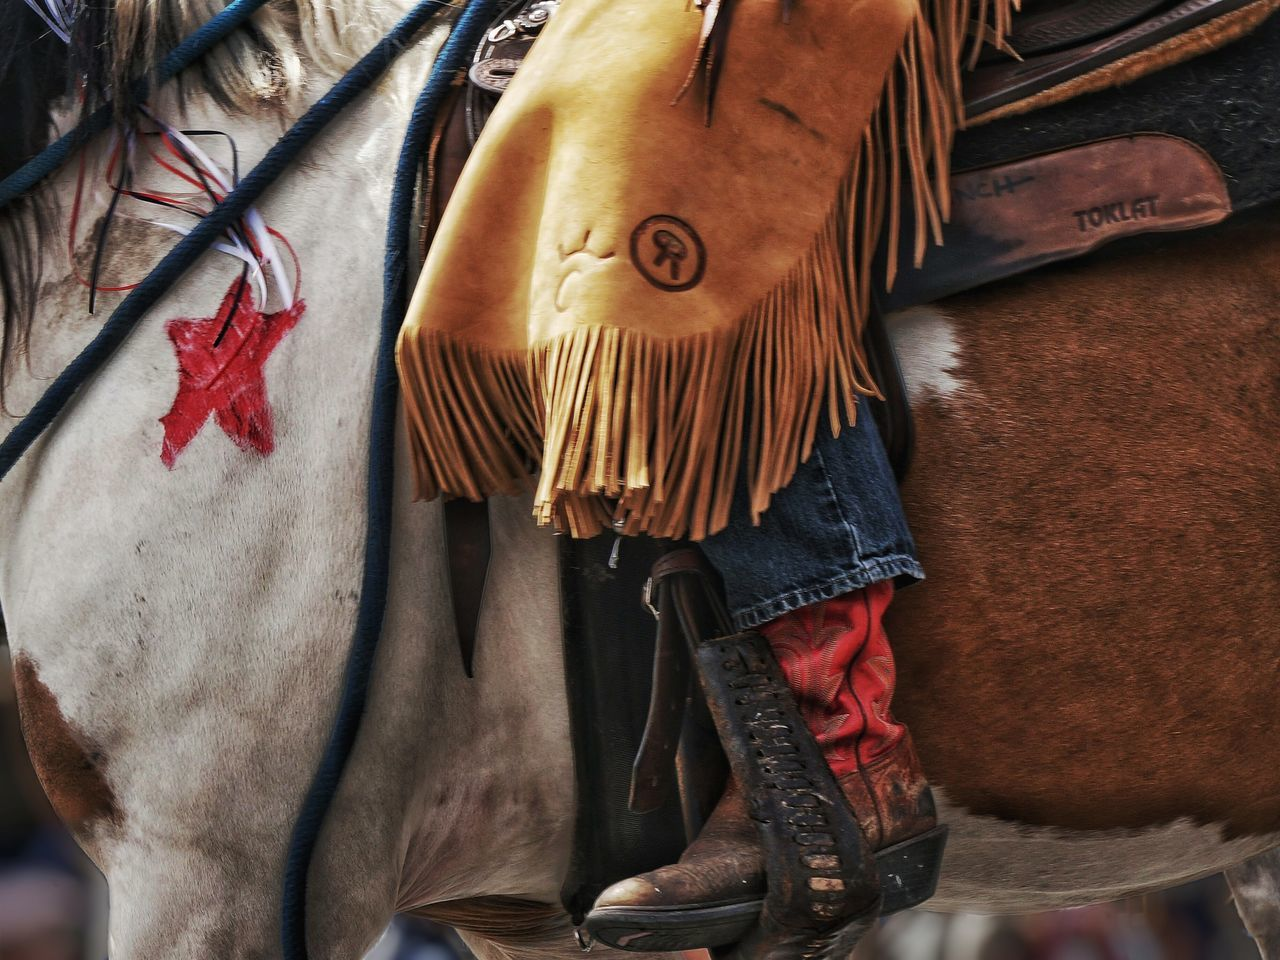 horse rider detail. Colour Of Life Horse Riding Stirrup Close-up Horse Painted Boots Leather My Year My View